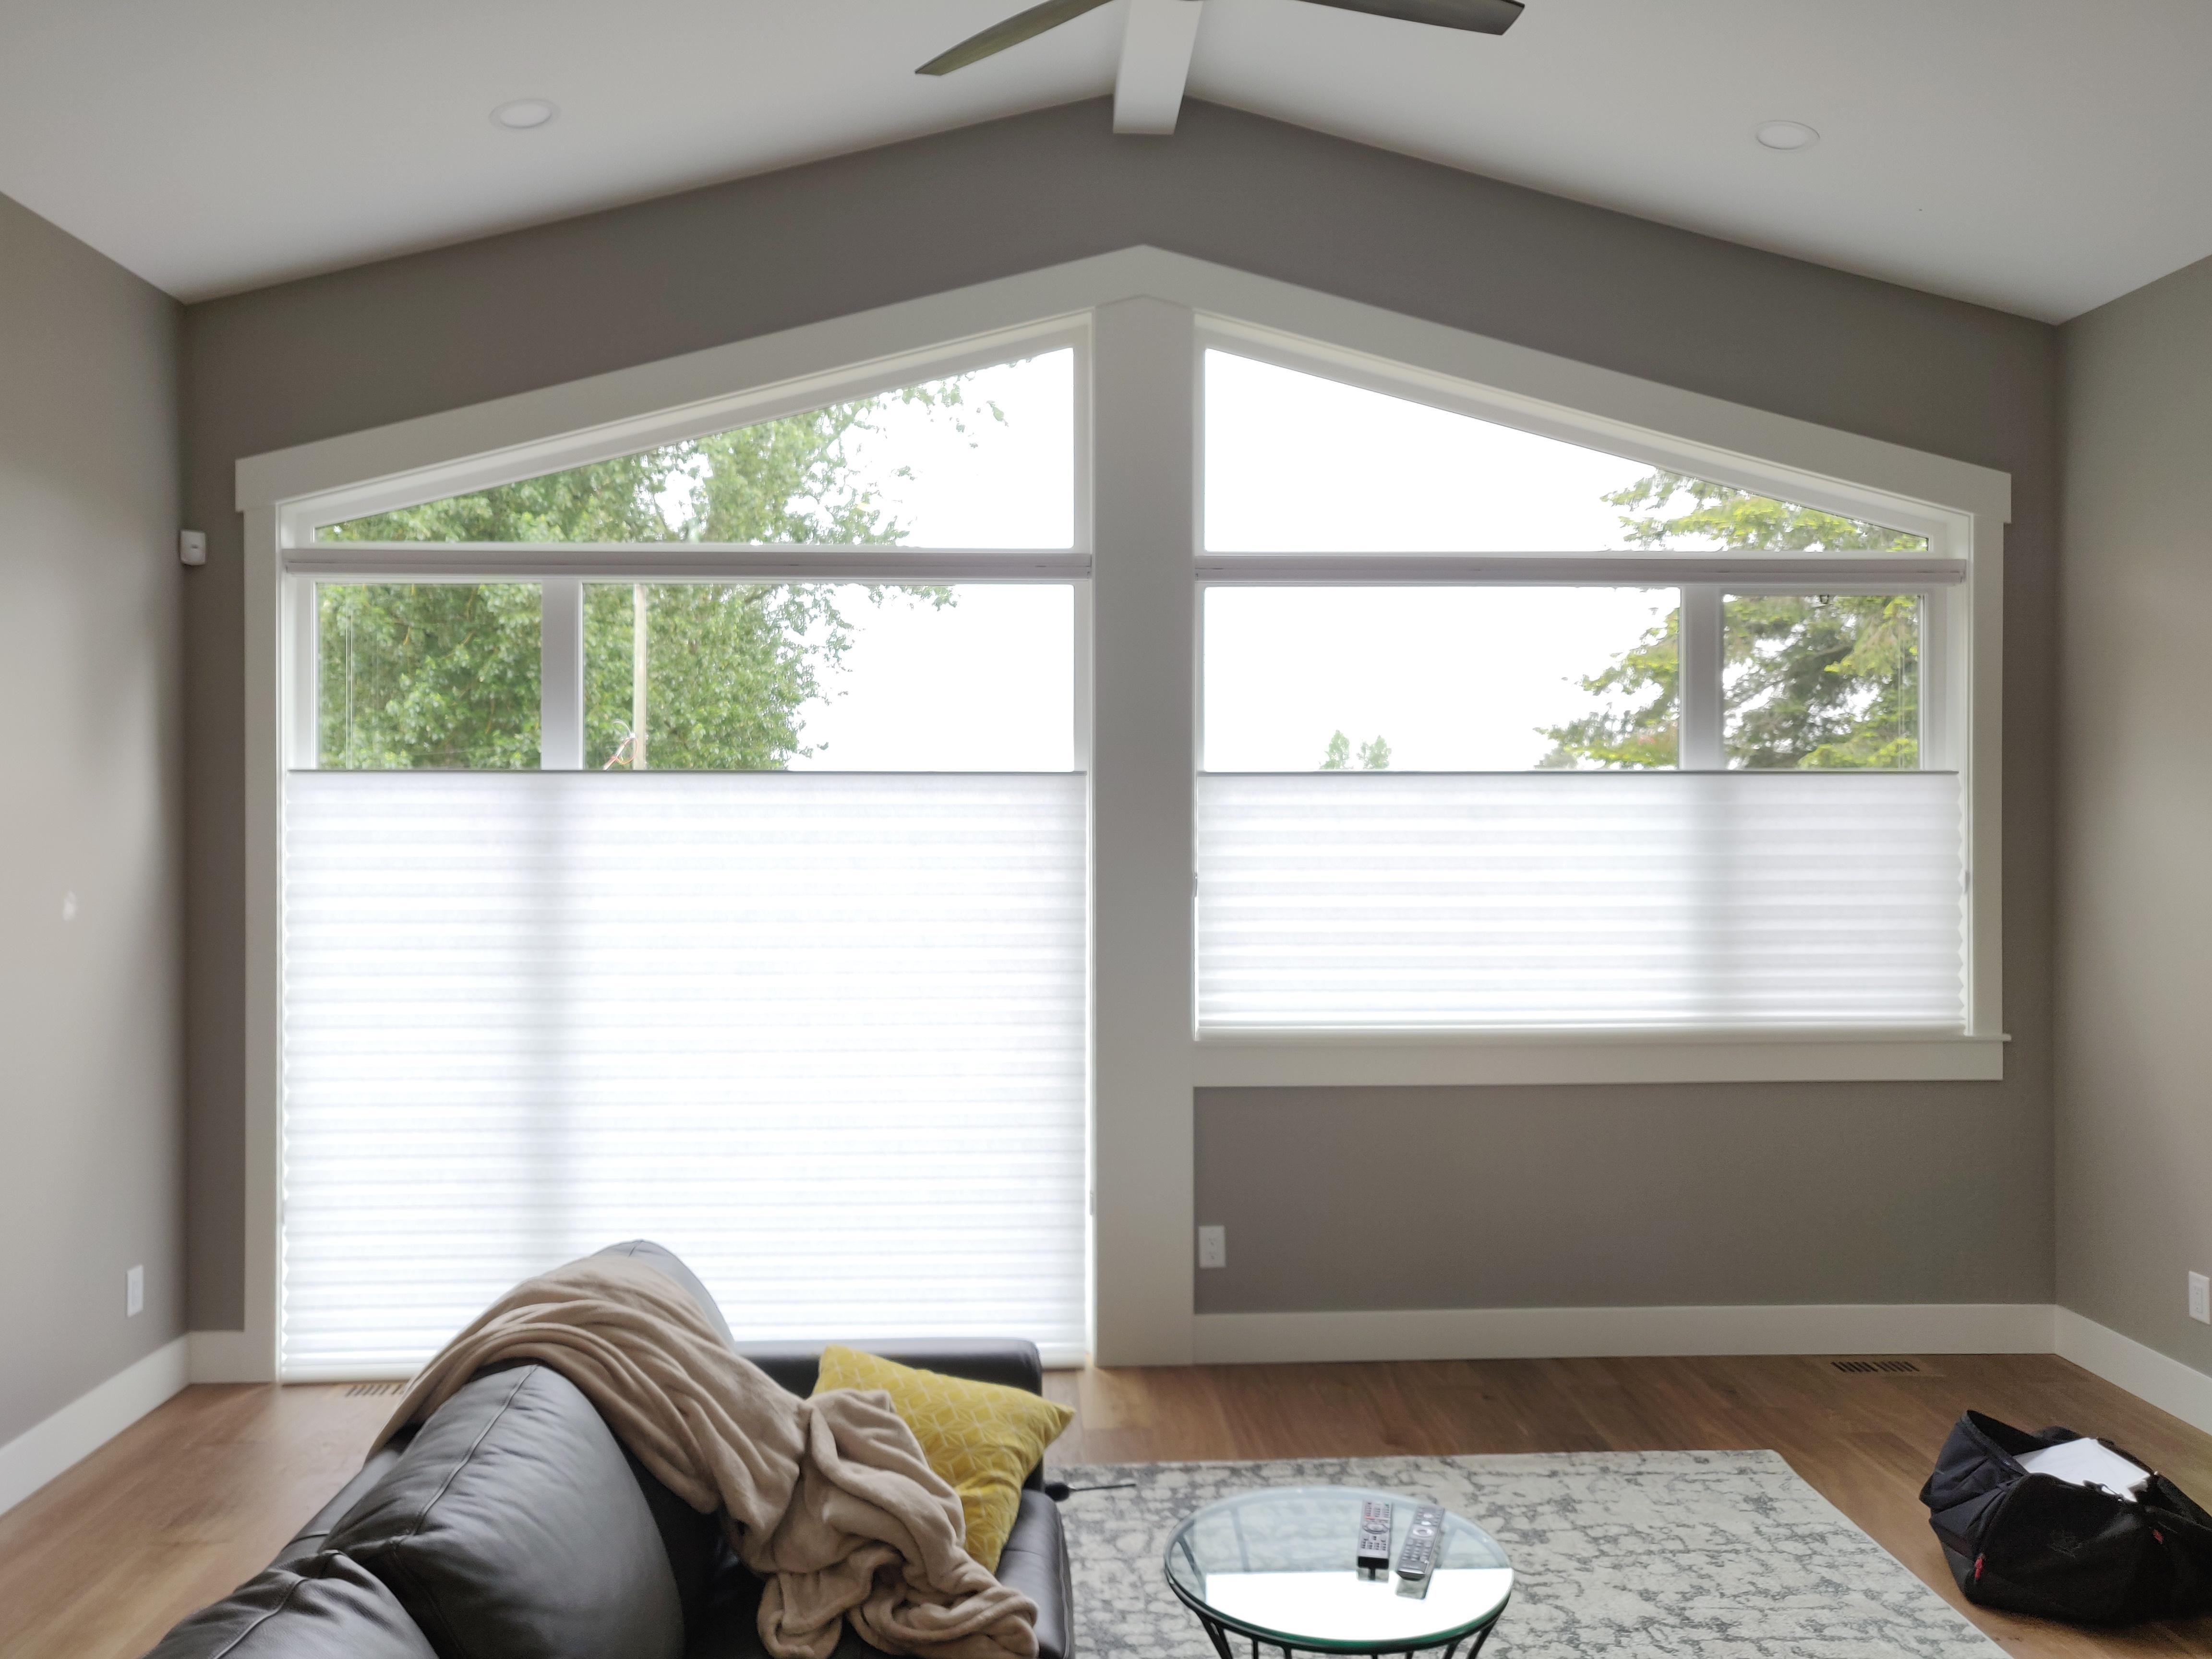 Budget Blinds of Delta, South Surrey and White Rock in Delta: Top-Down Bottom-Up Cellular Shades for privacy and heat control